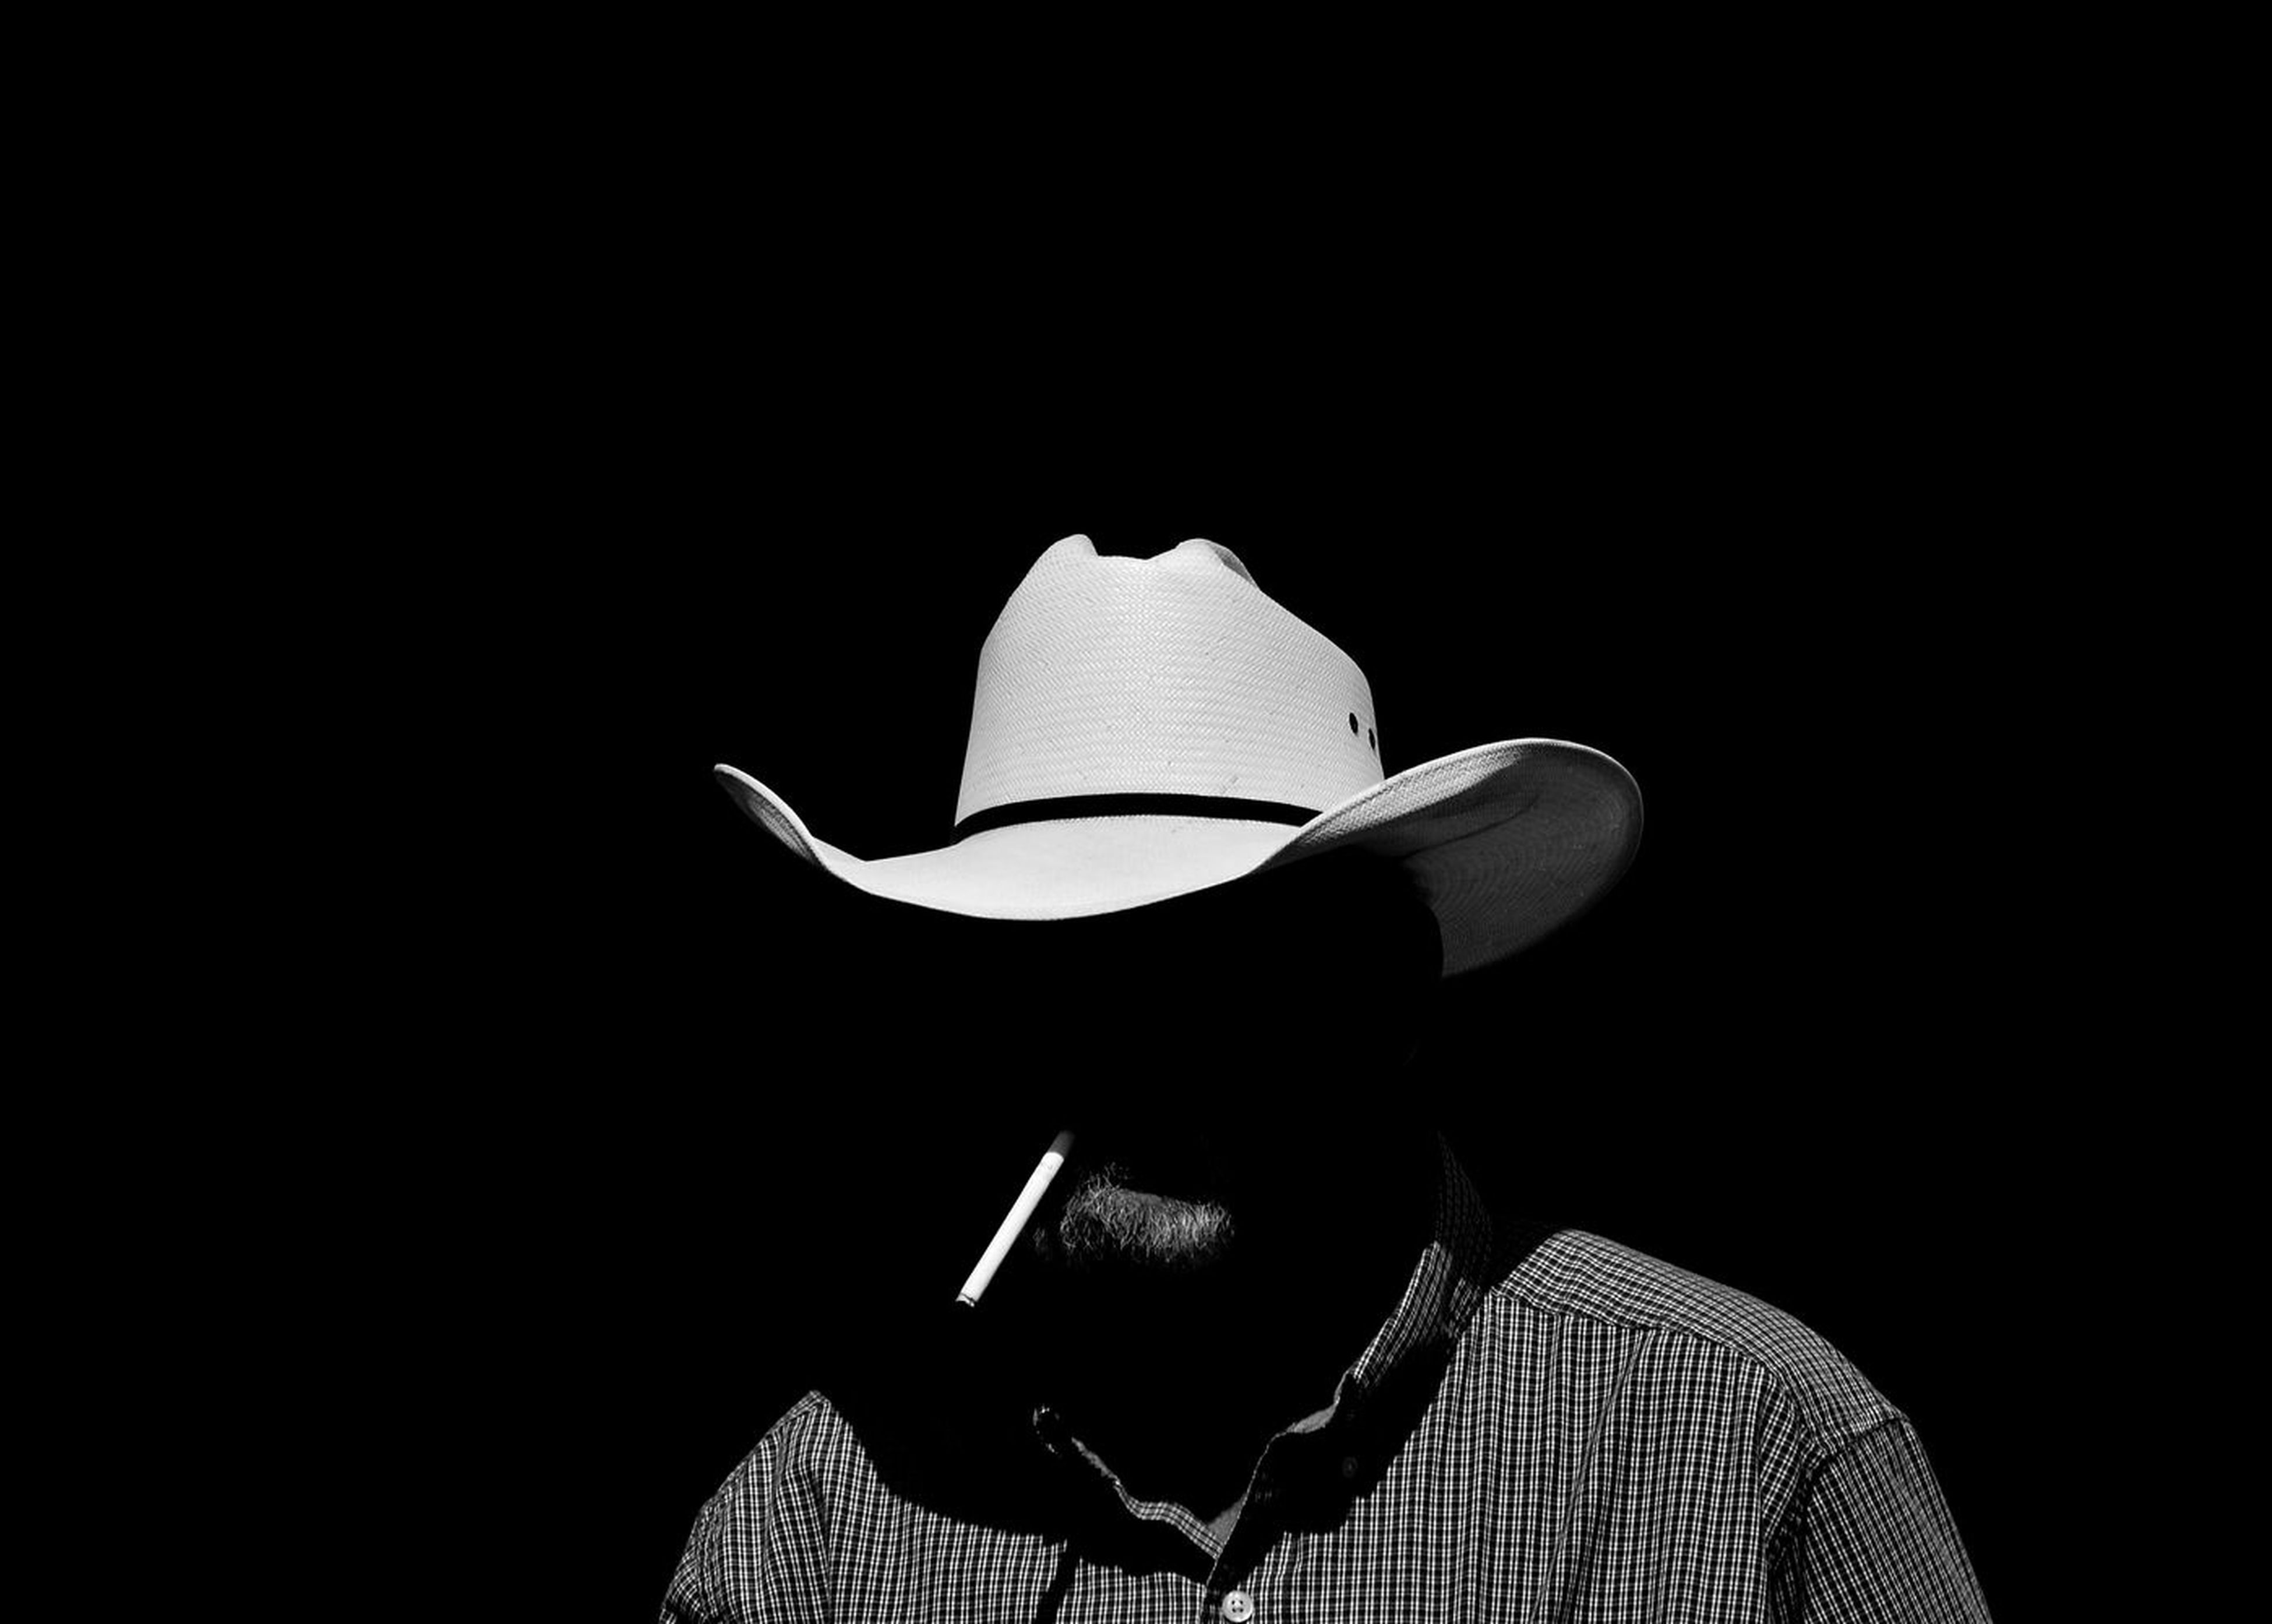 hat, black background, studio shot, men, cowboy hat, headshot, real people, lifestyles, one person, headwear, day, people